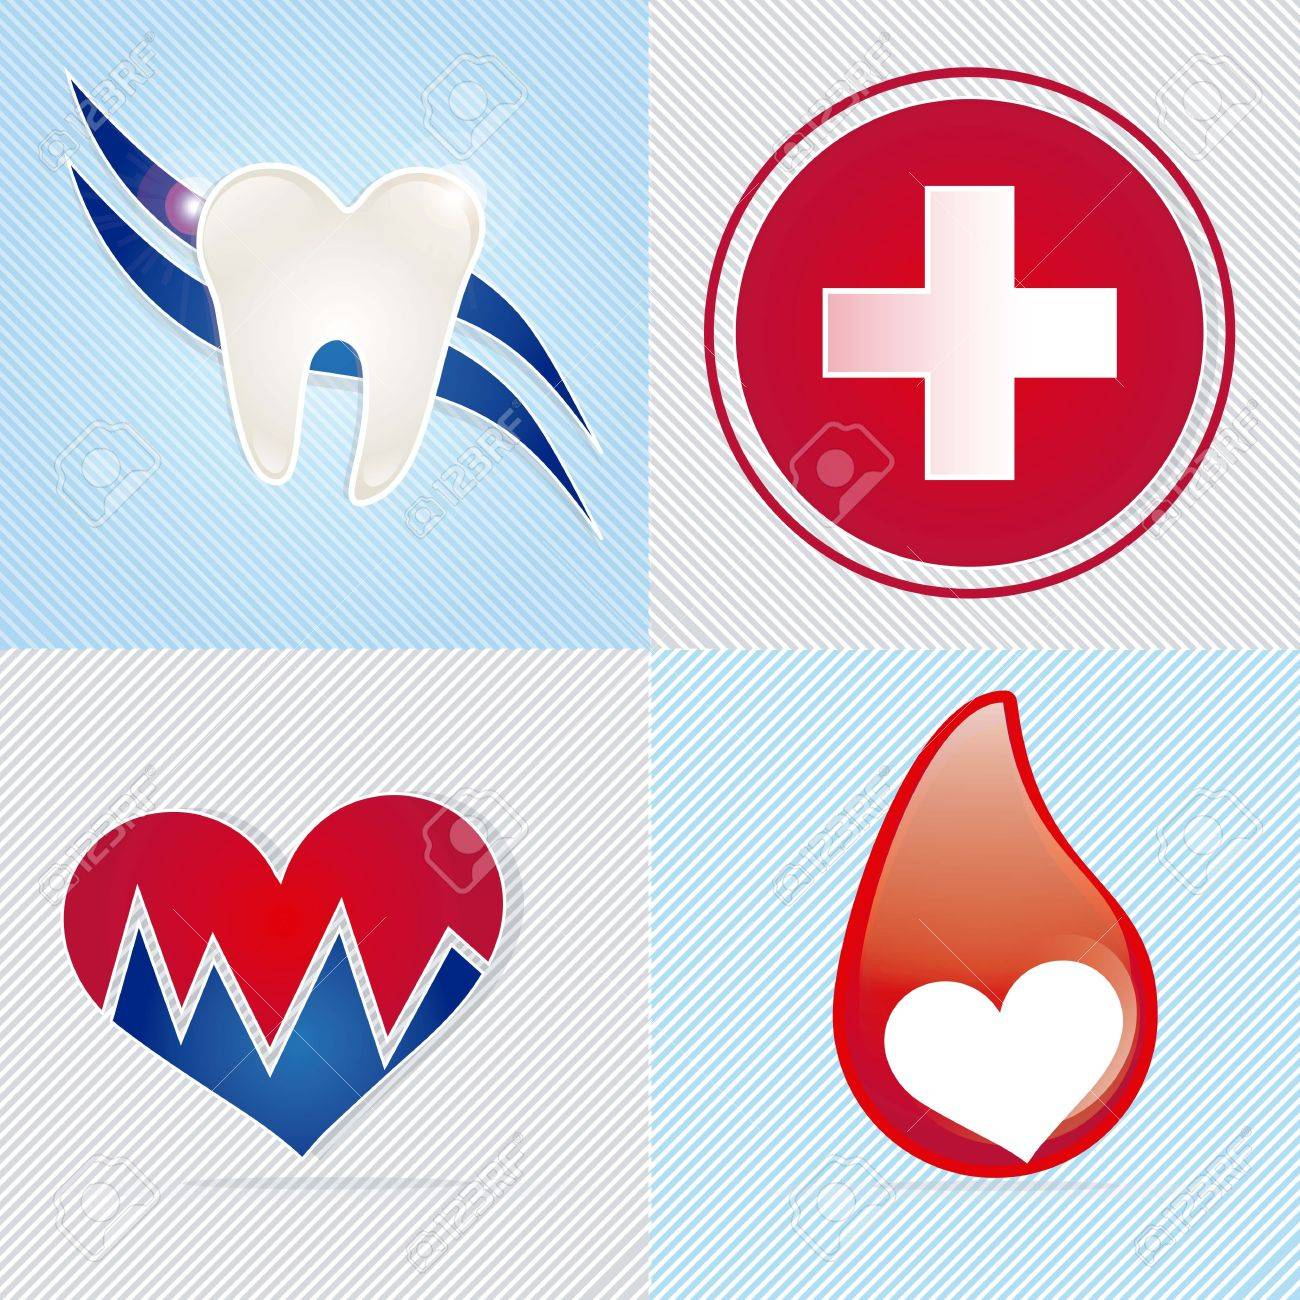 Medical icons over white background vector illustration Stock Vector - 17351930